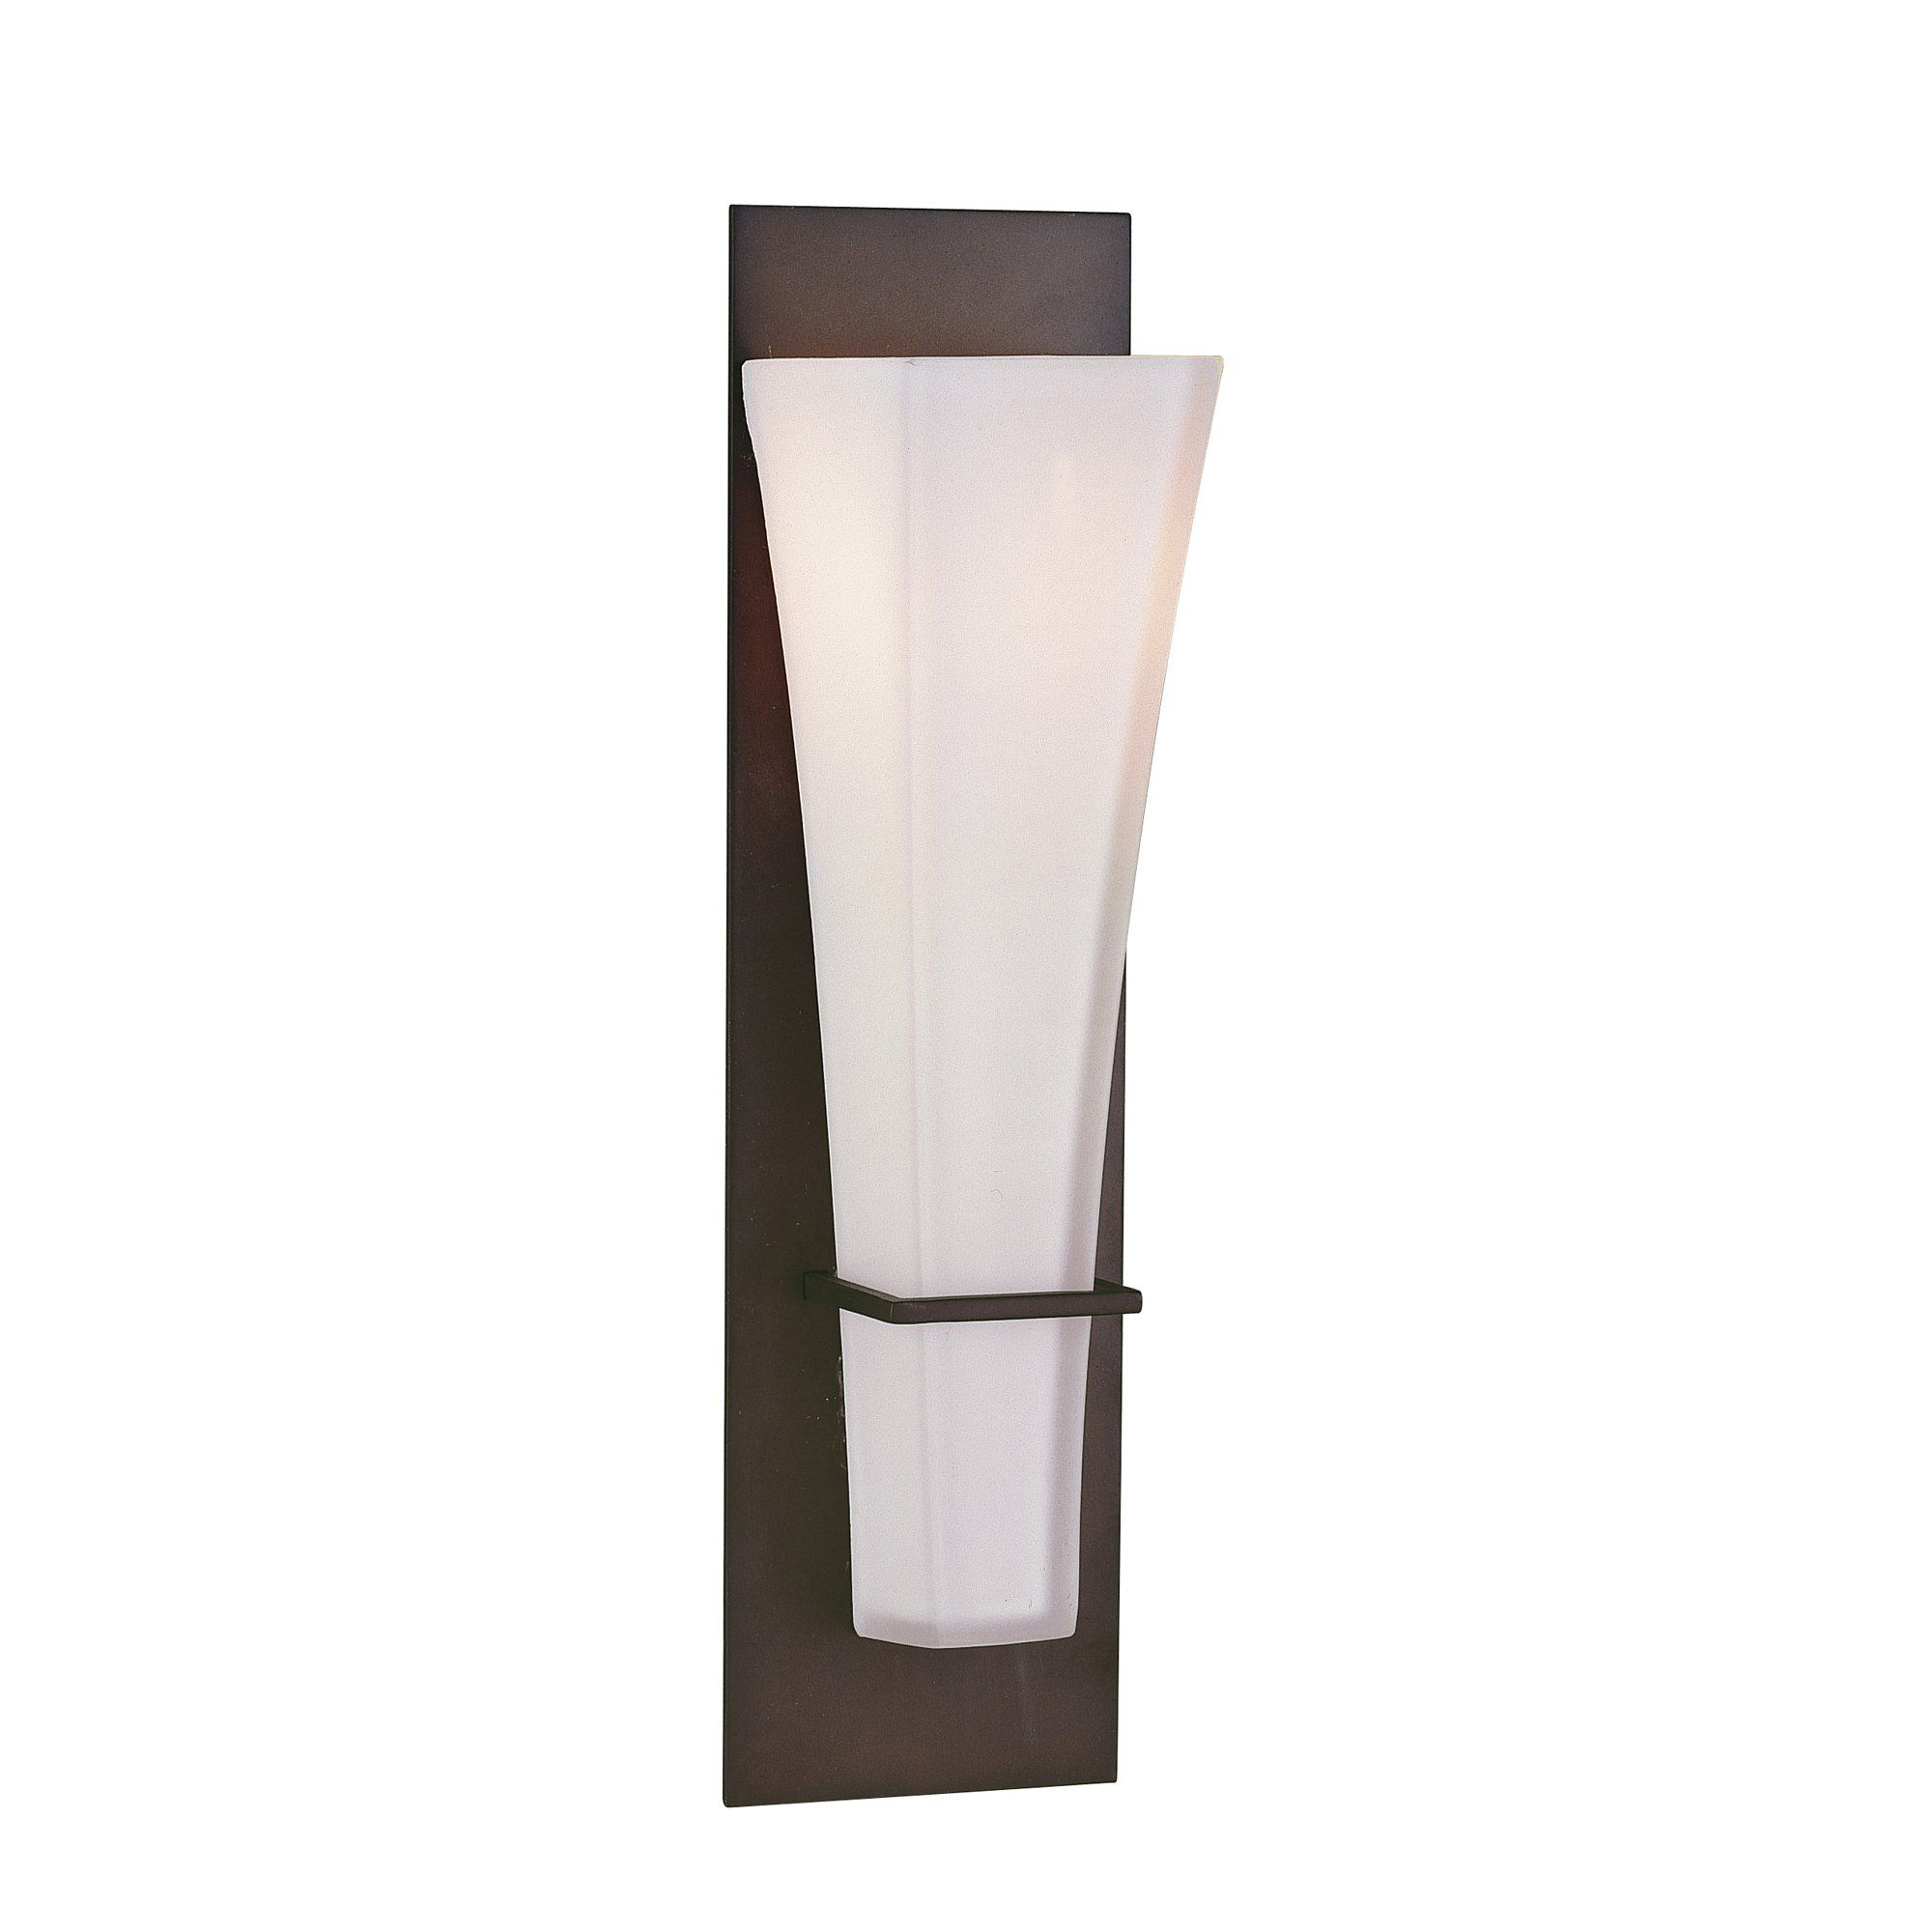 Murray Feiss WB1220ORB Boulevard Wall Sconce   Lighting Universe